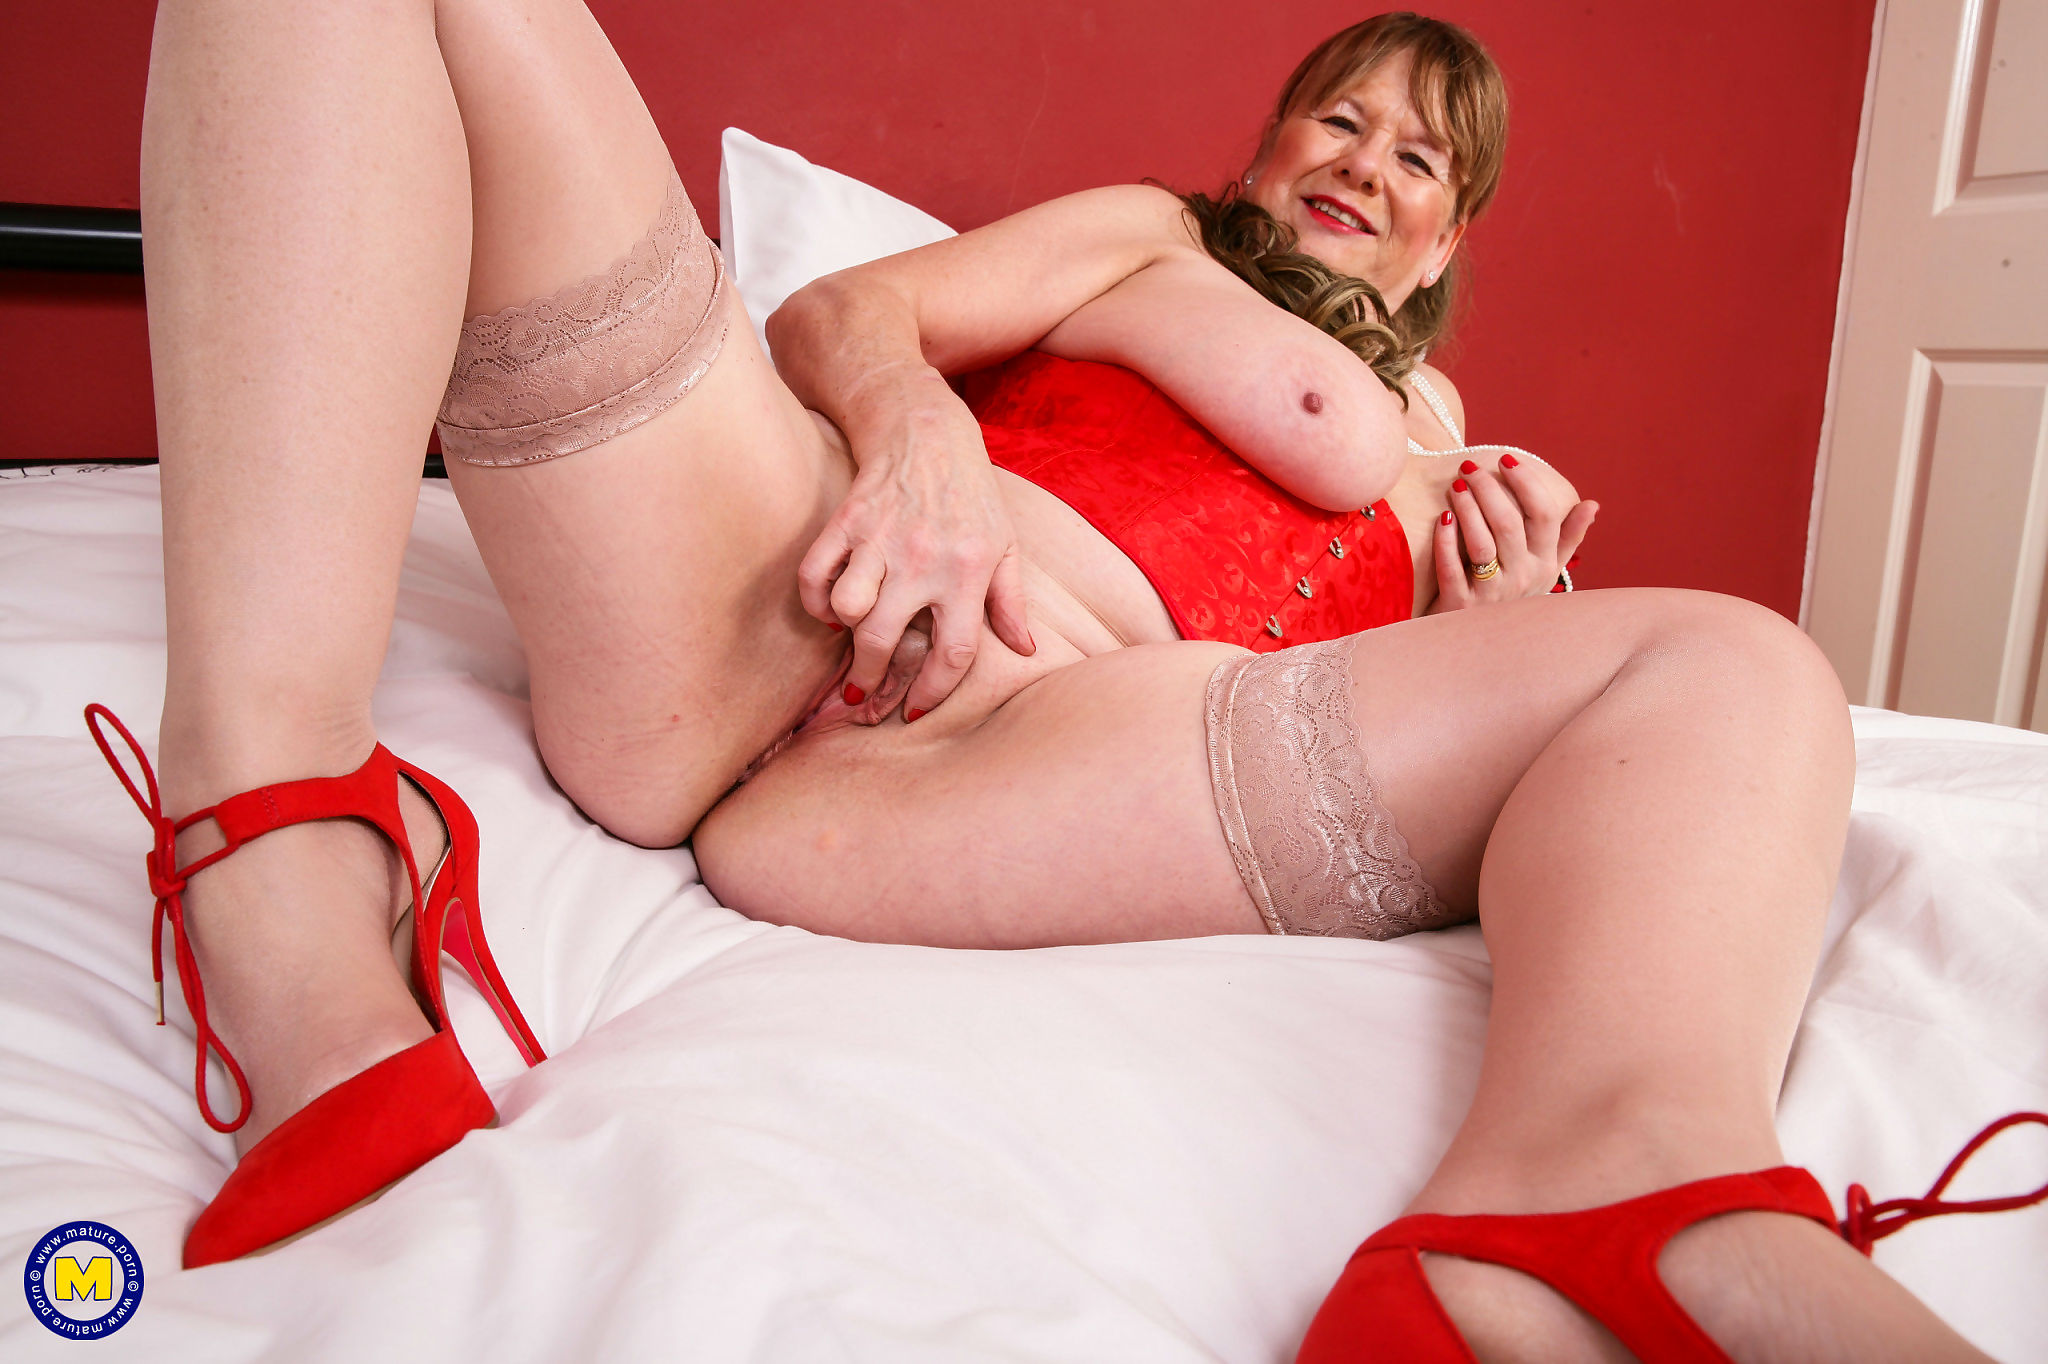 Curvy british housewife shows off her dirty mind - part 1331